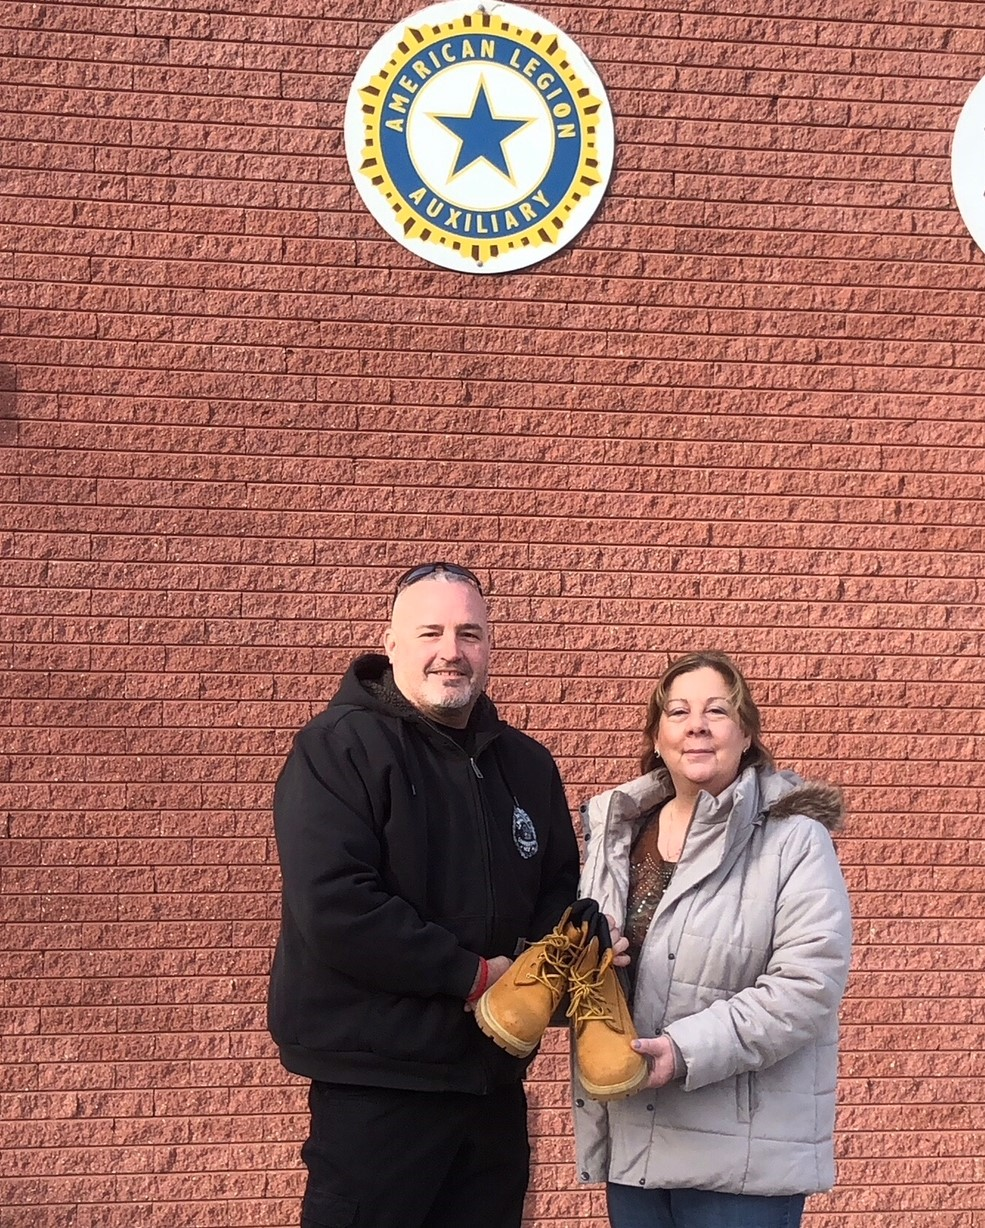 Slightly Worn Boots find their way to Homeless Veterans